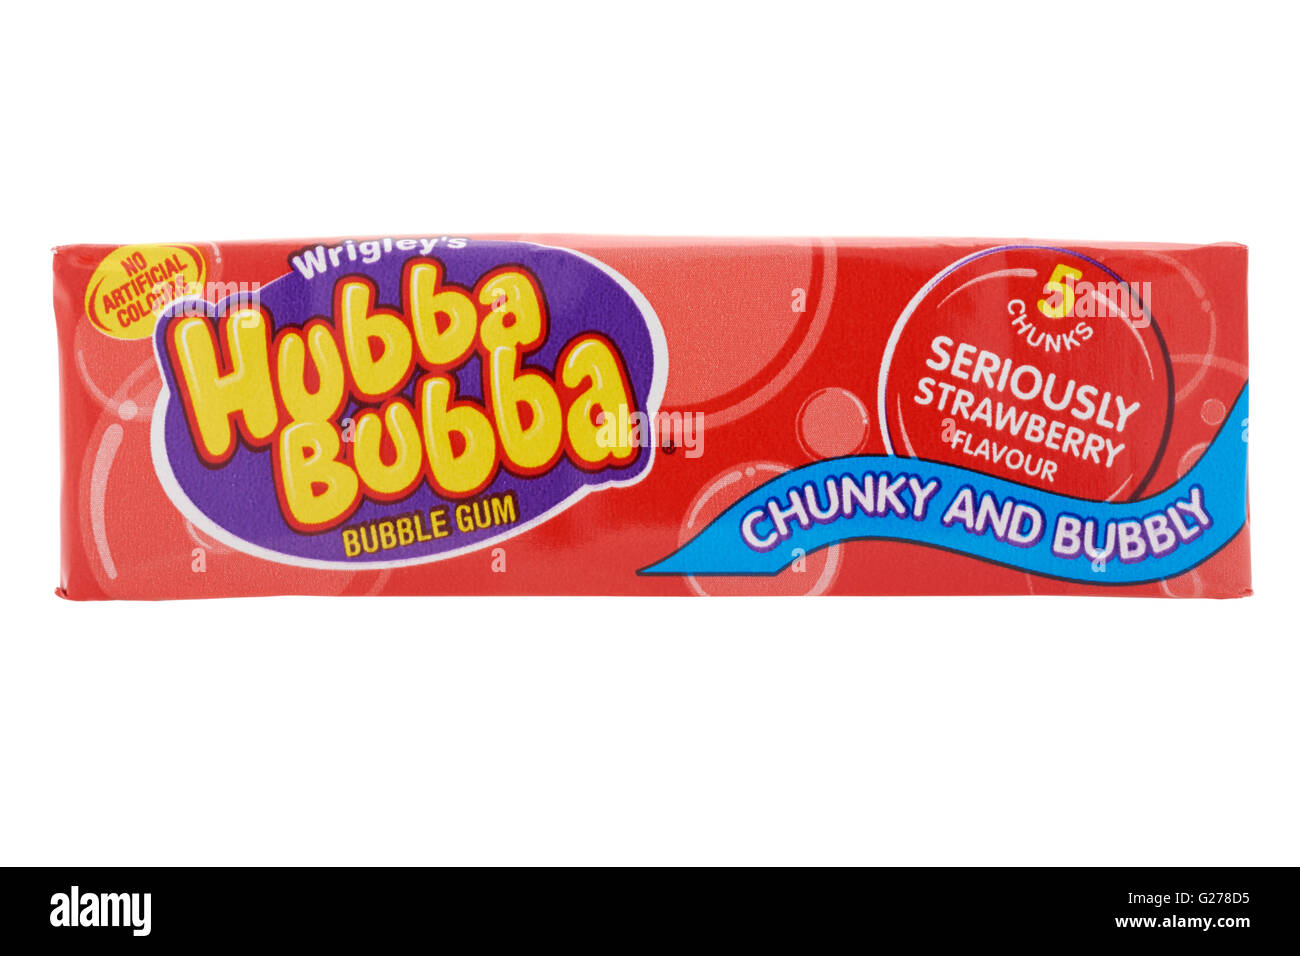 Sachet de bubble-gum Hubba Bubba sur fond blanc Photo Stock